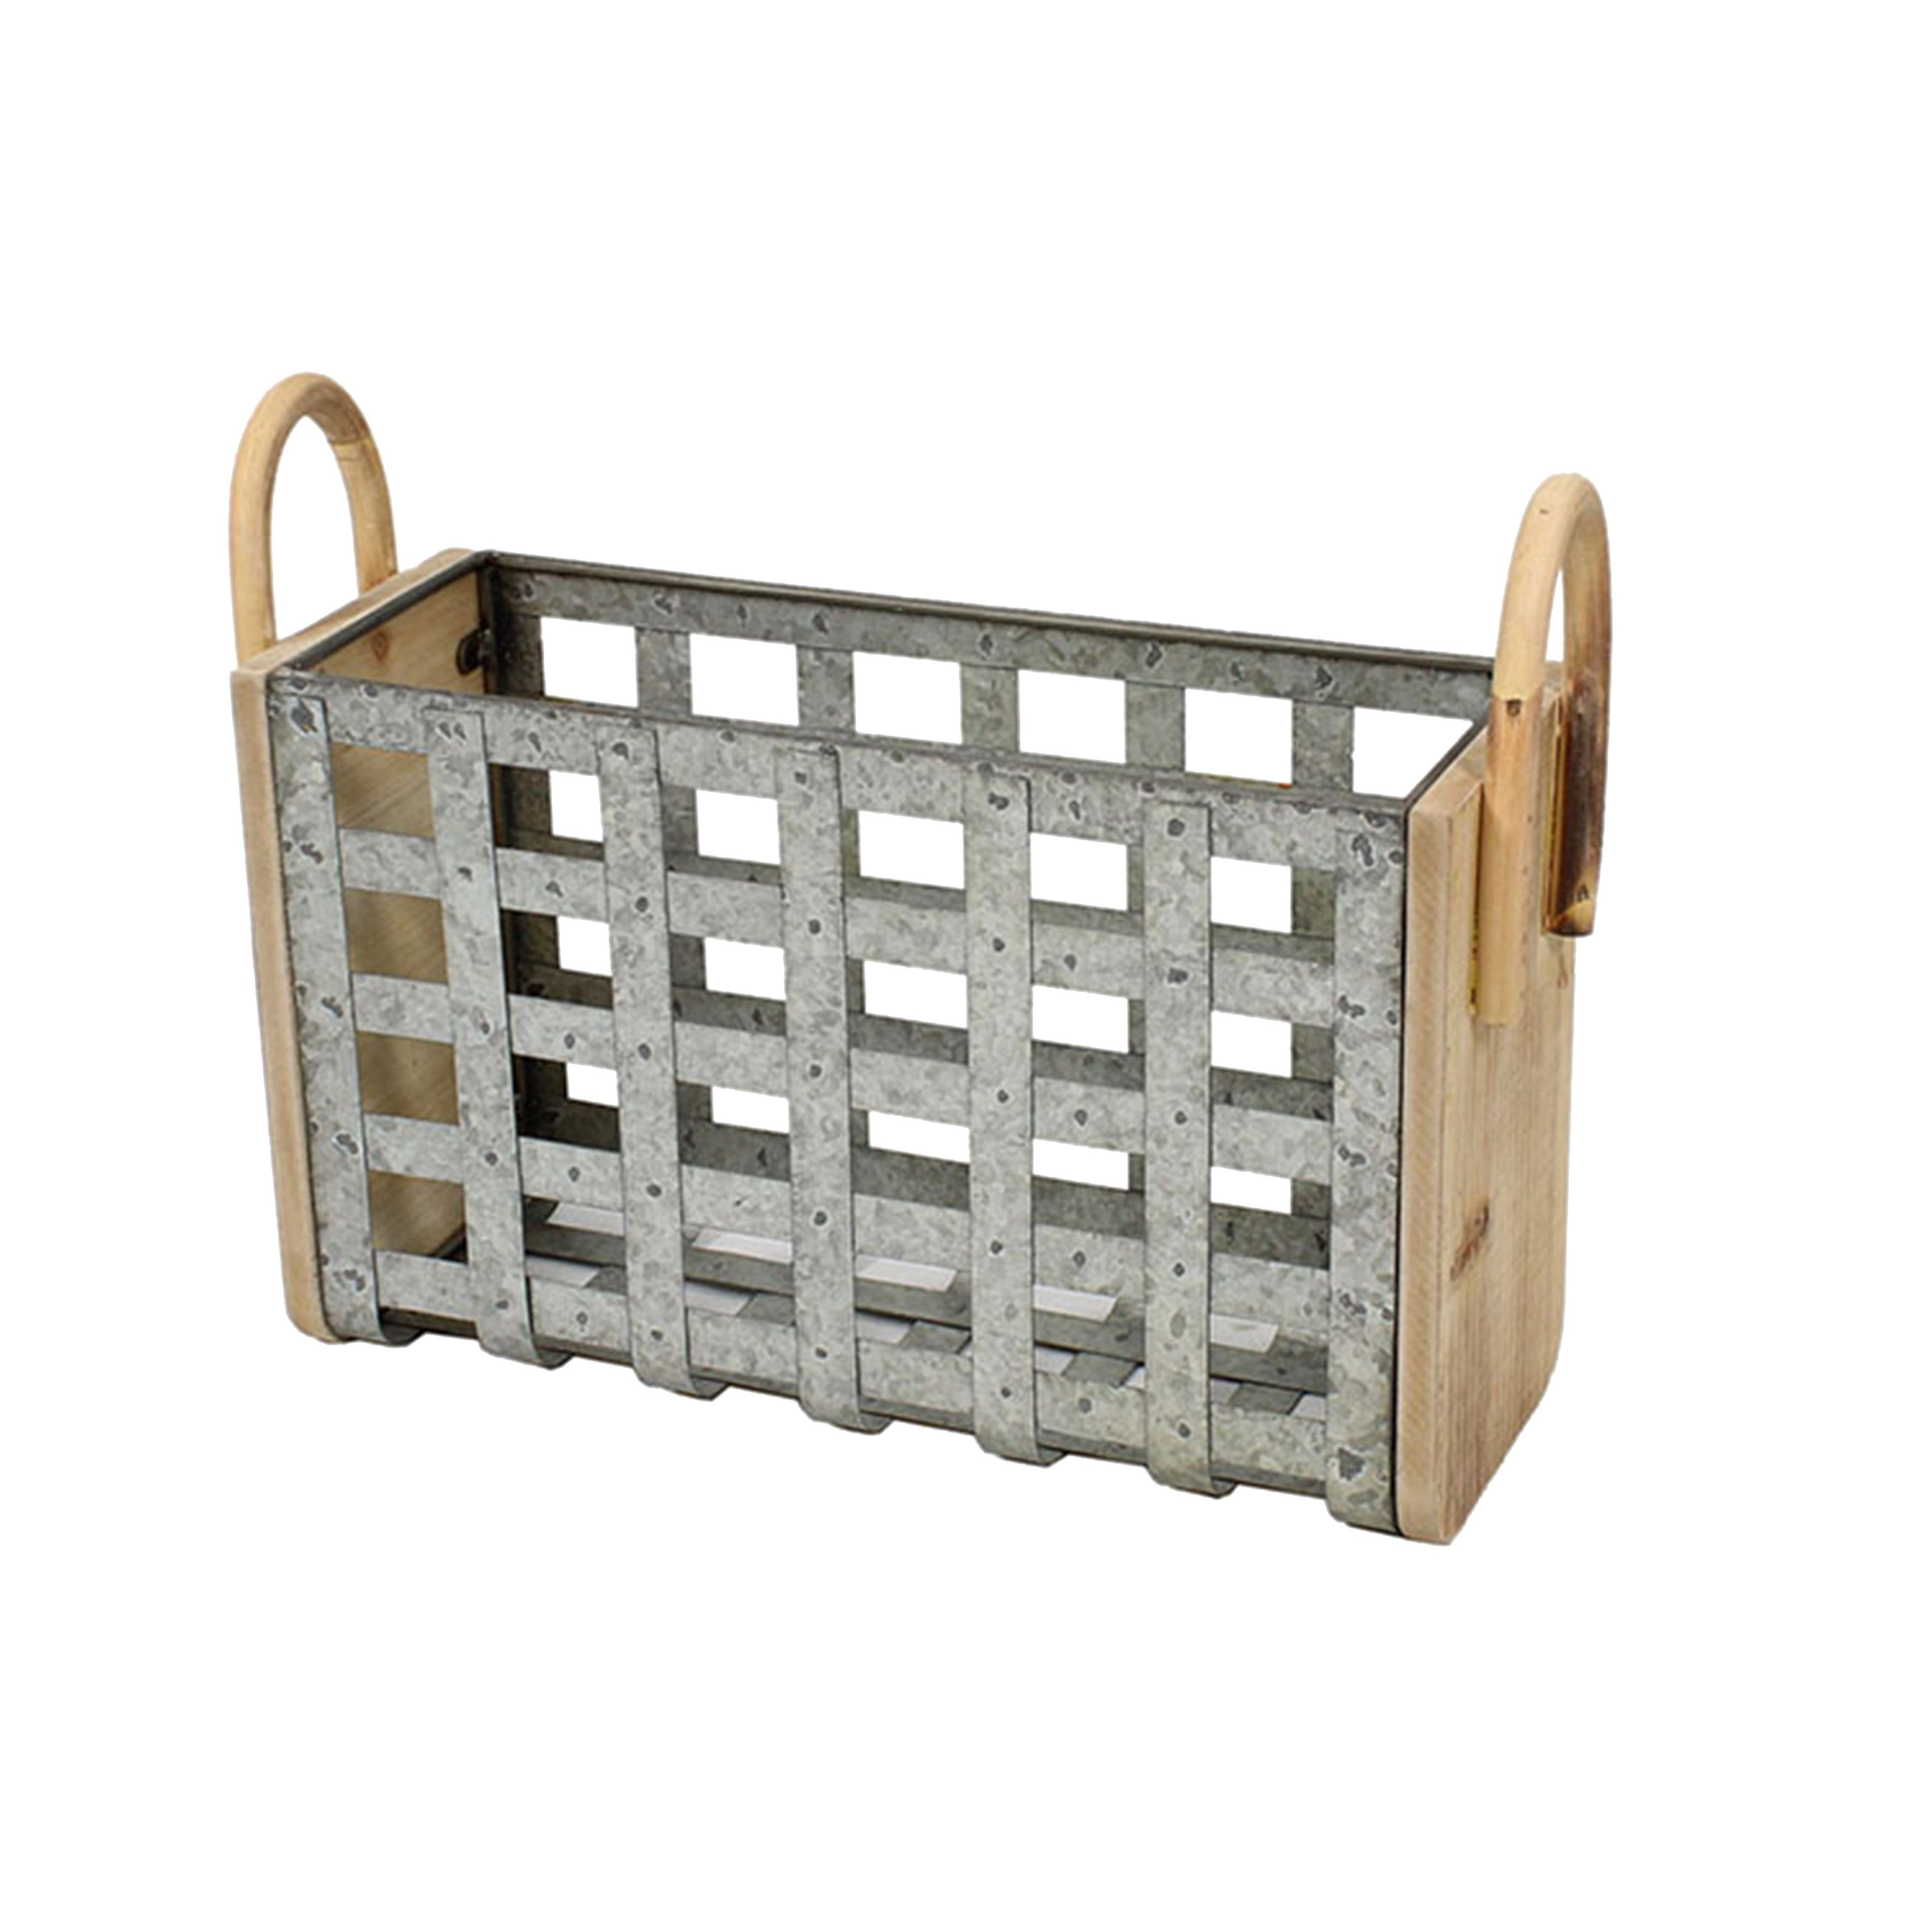 Transitional Style Tin and Wooden Woven Galvanized Basket with Two Handles, Gray and Brown